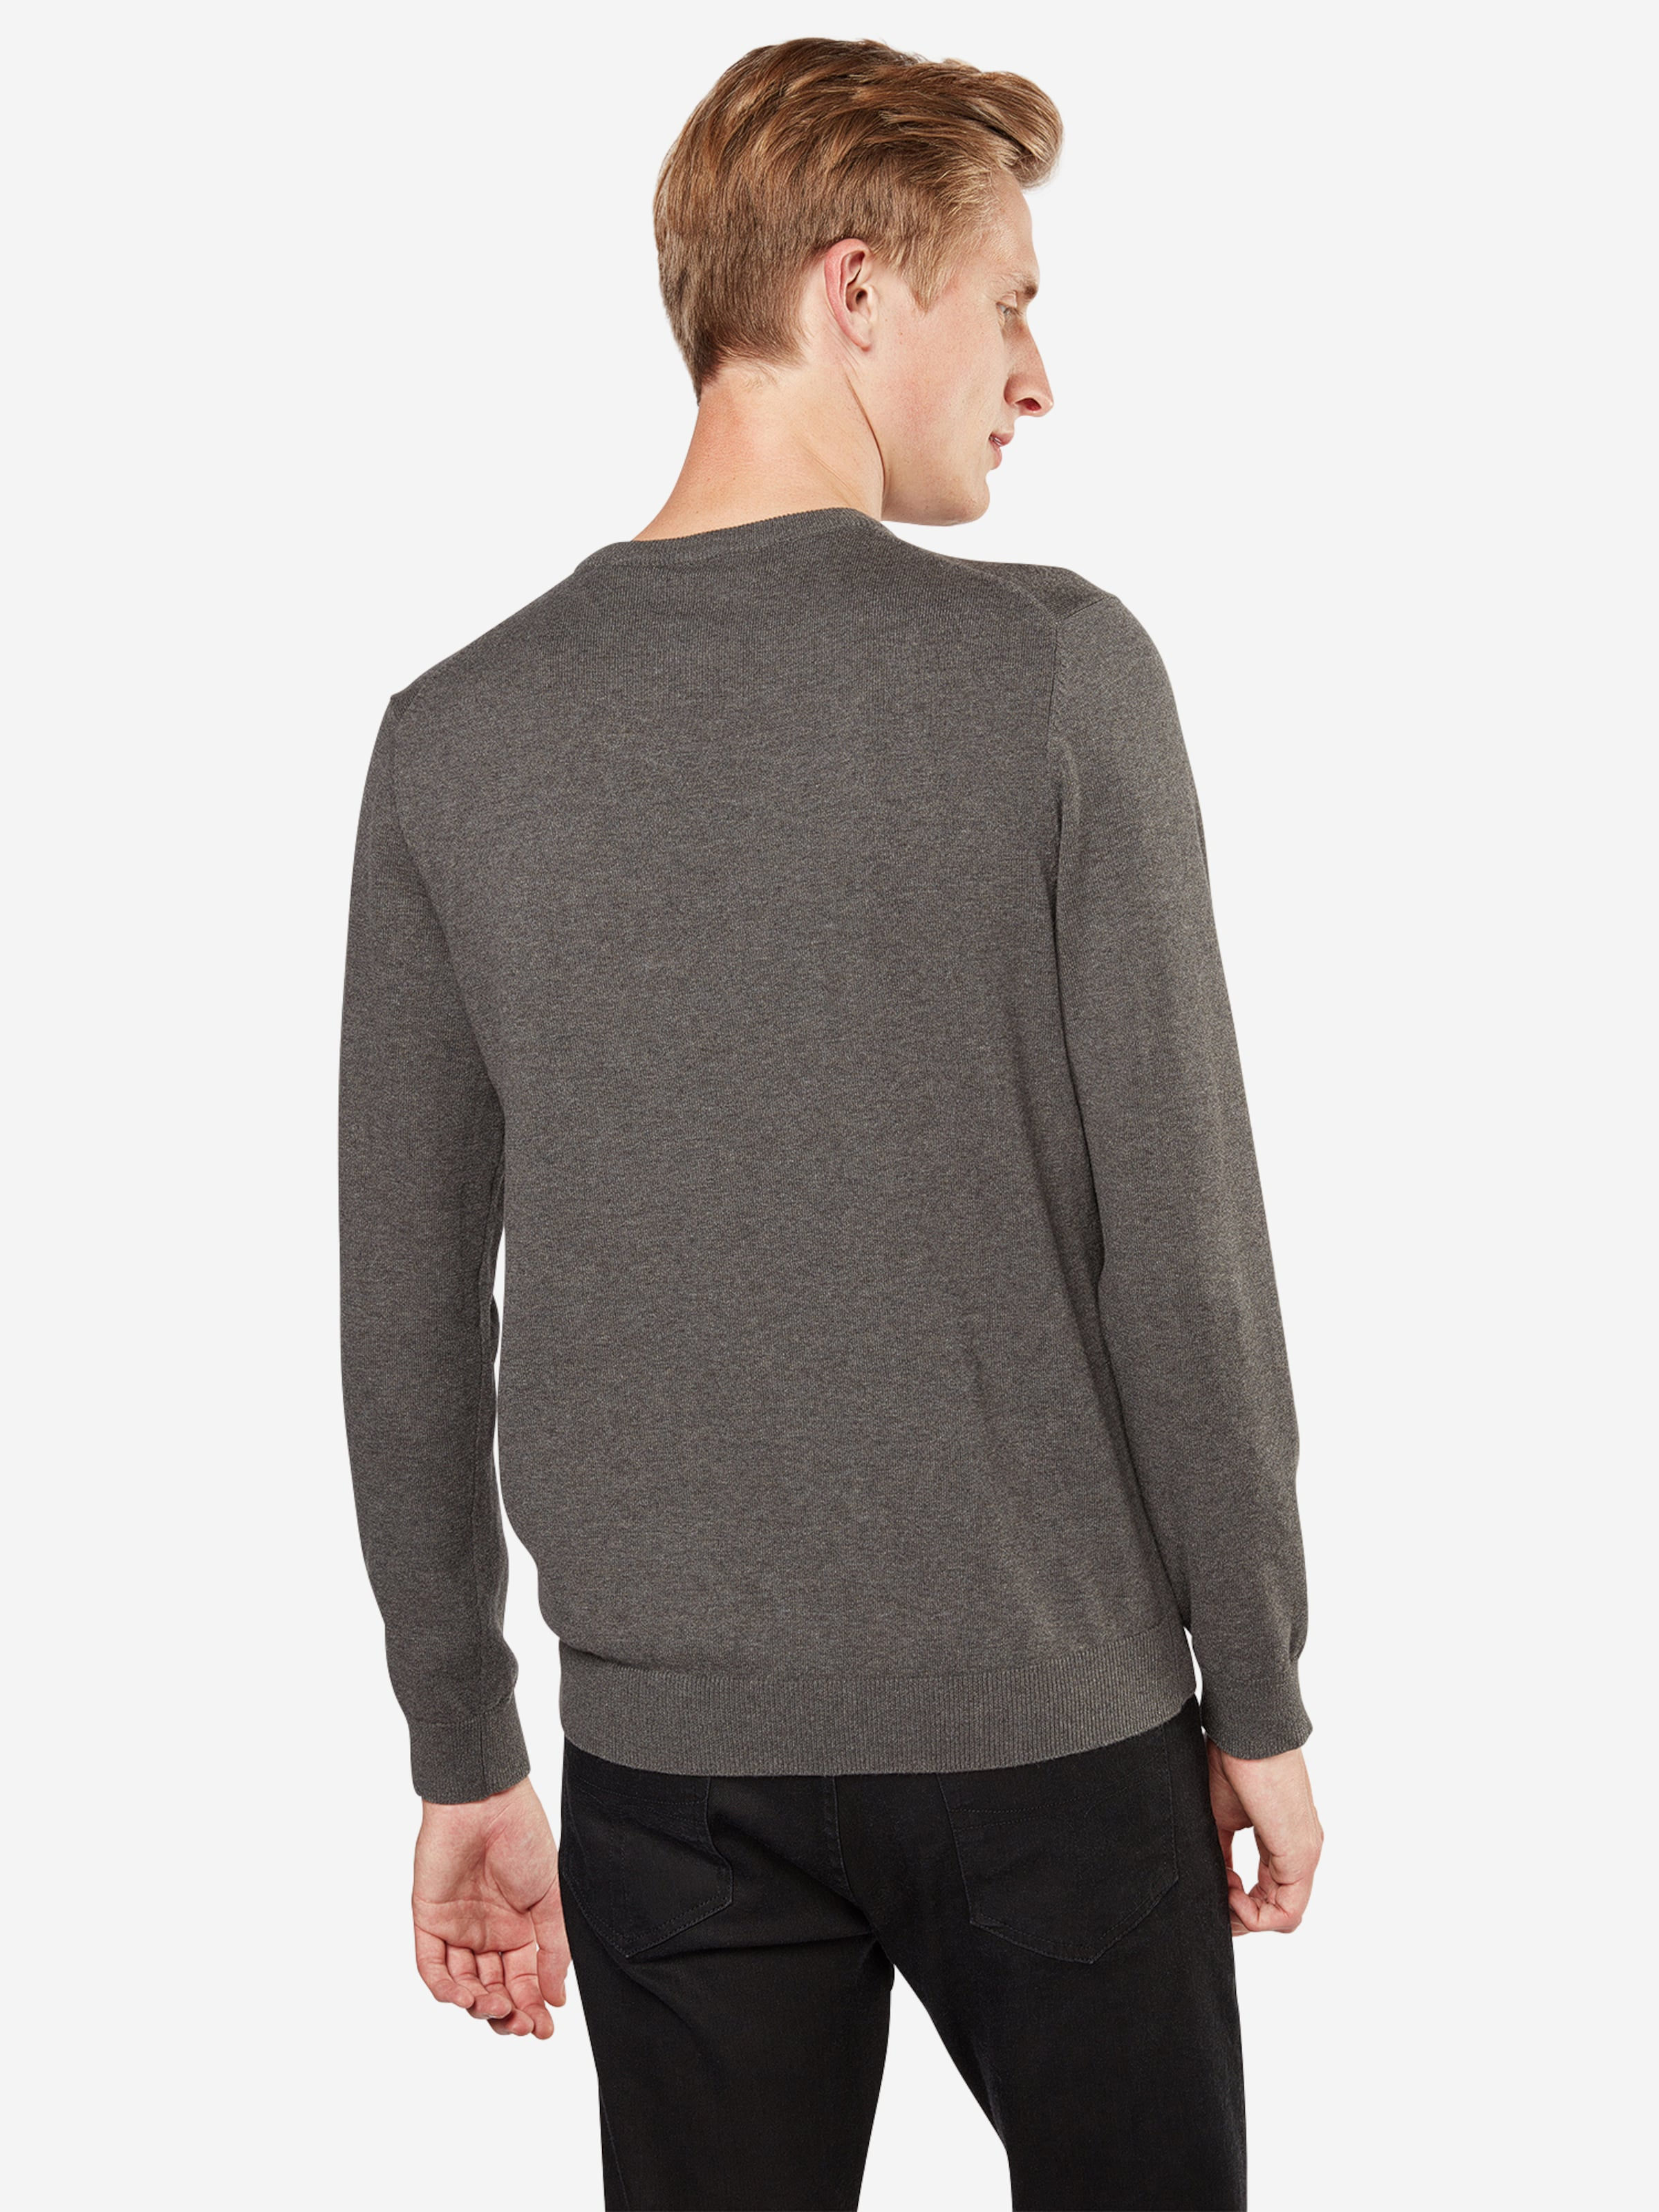 Co 'basic In Taupe Pullover Crew' Esprit E9IH2WD